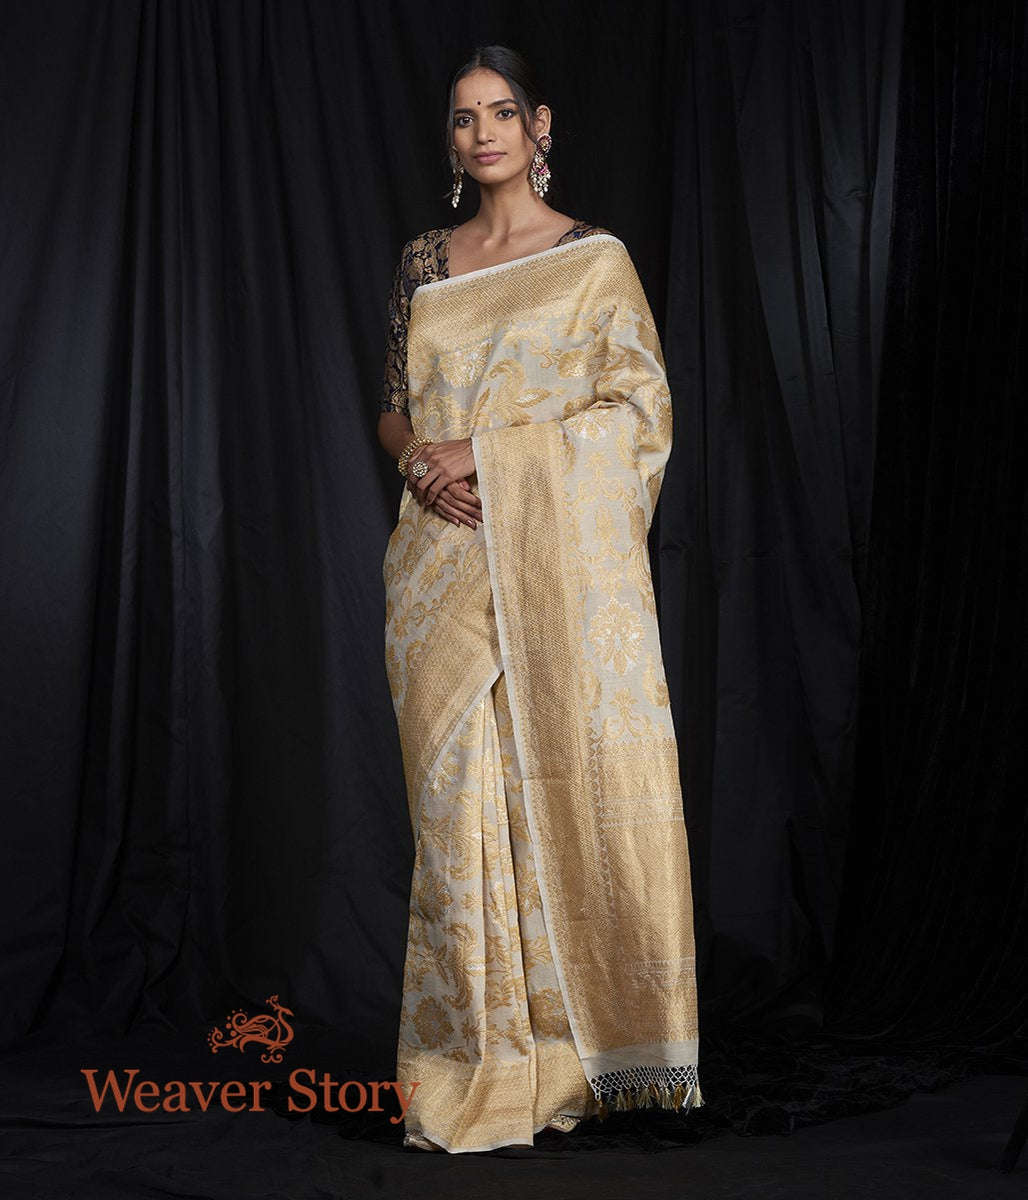 Handwoven Banarasi Jangla Saree in Tusser With Sona Rupa Zari